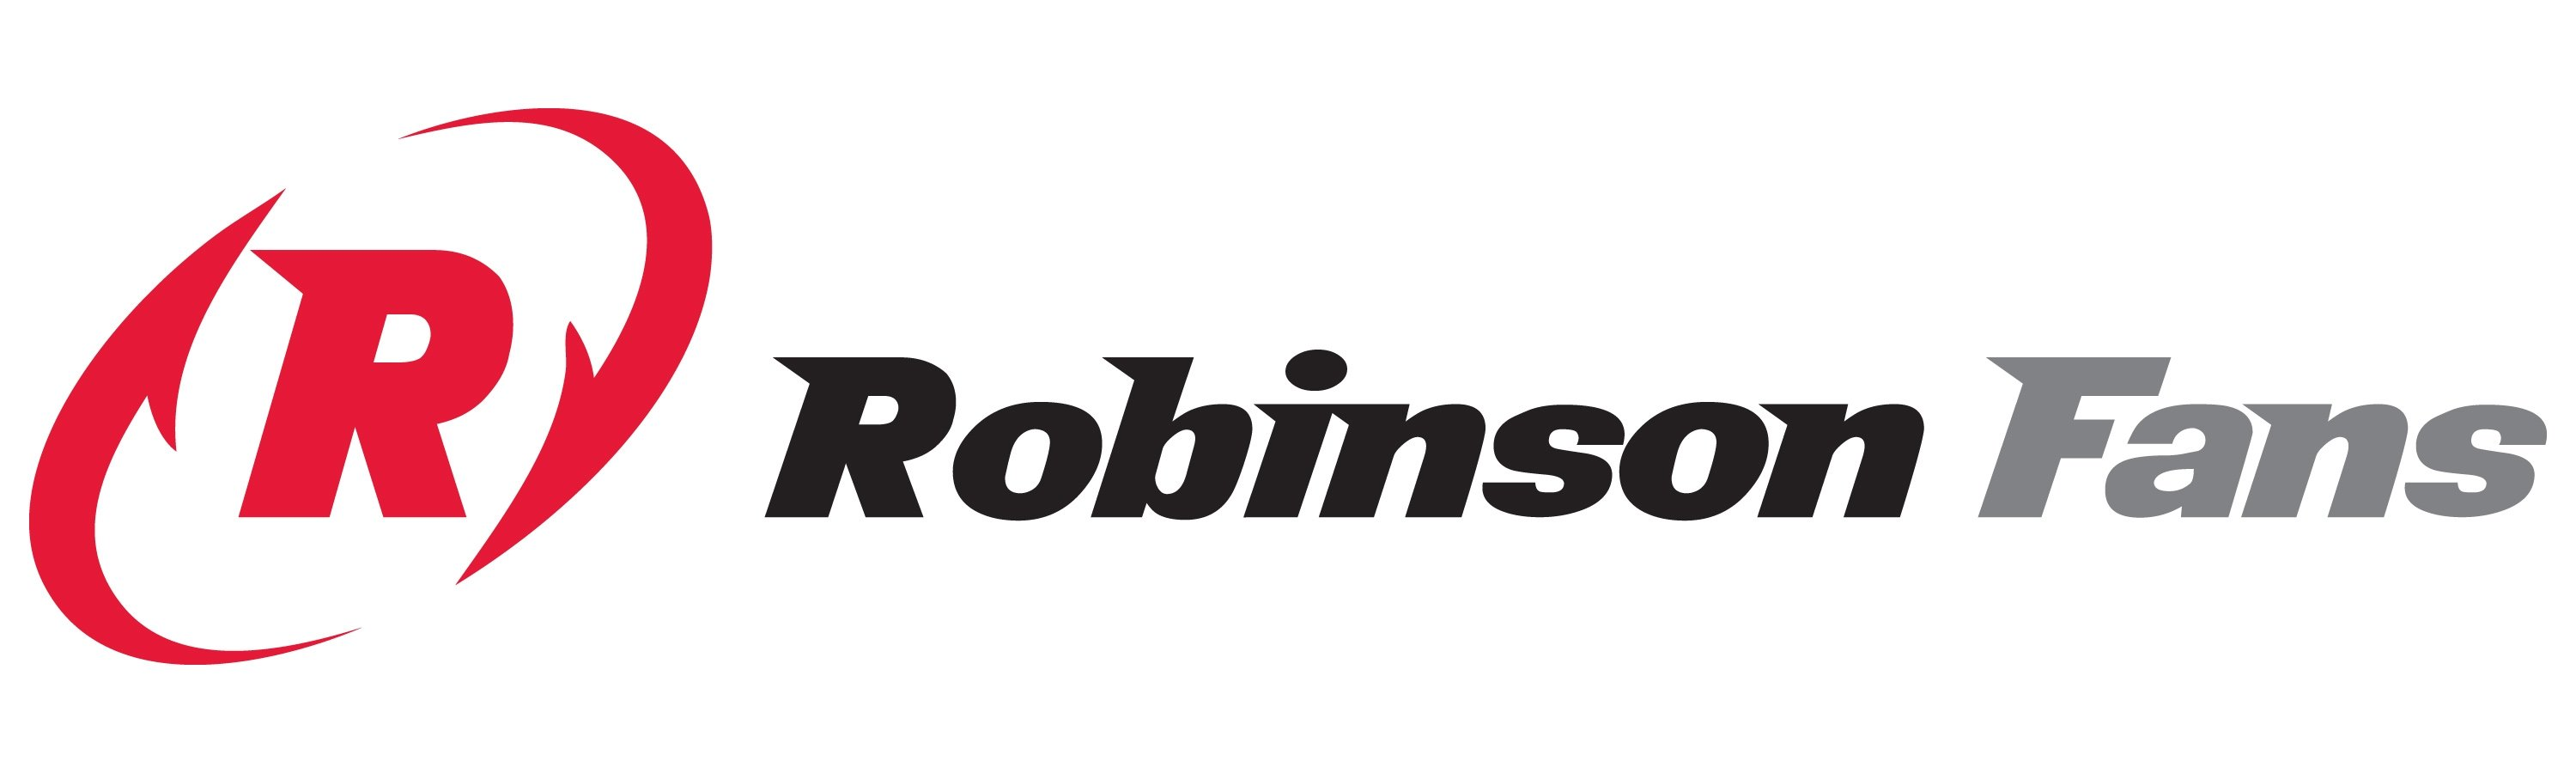 Robinson Fans logo, which uses Helwig Carbon's motor shaft grounding systems